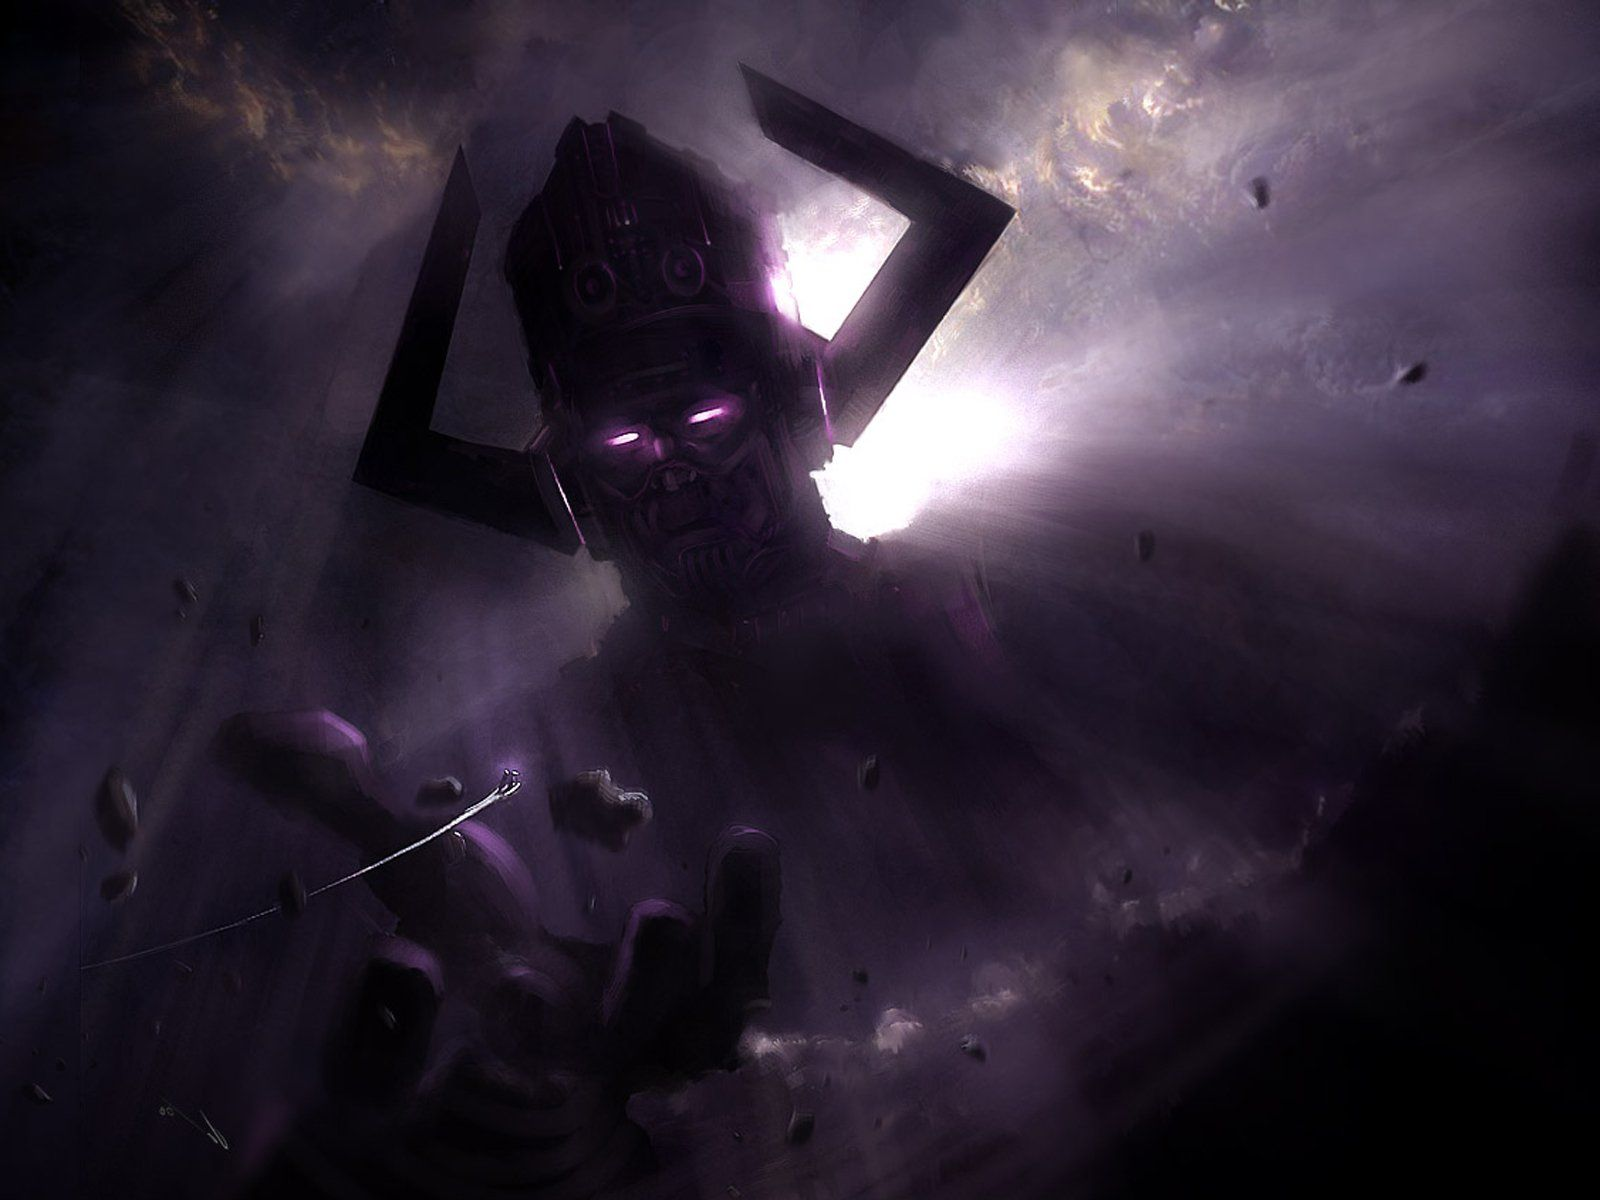 Galactus 4k Wallpapers Top Free Galactus 4k Backgrounds